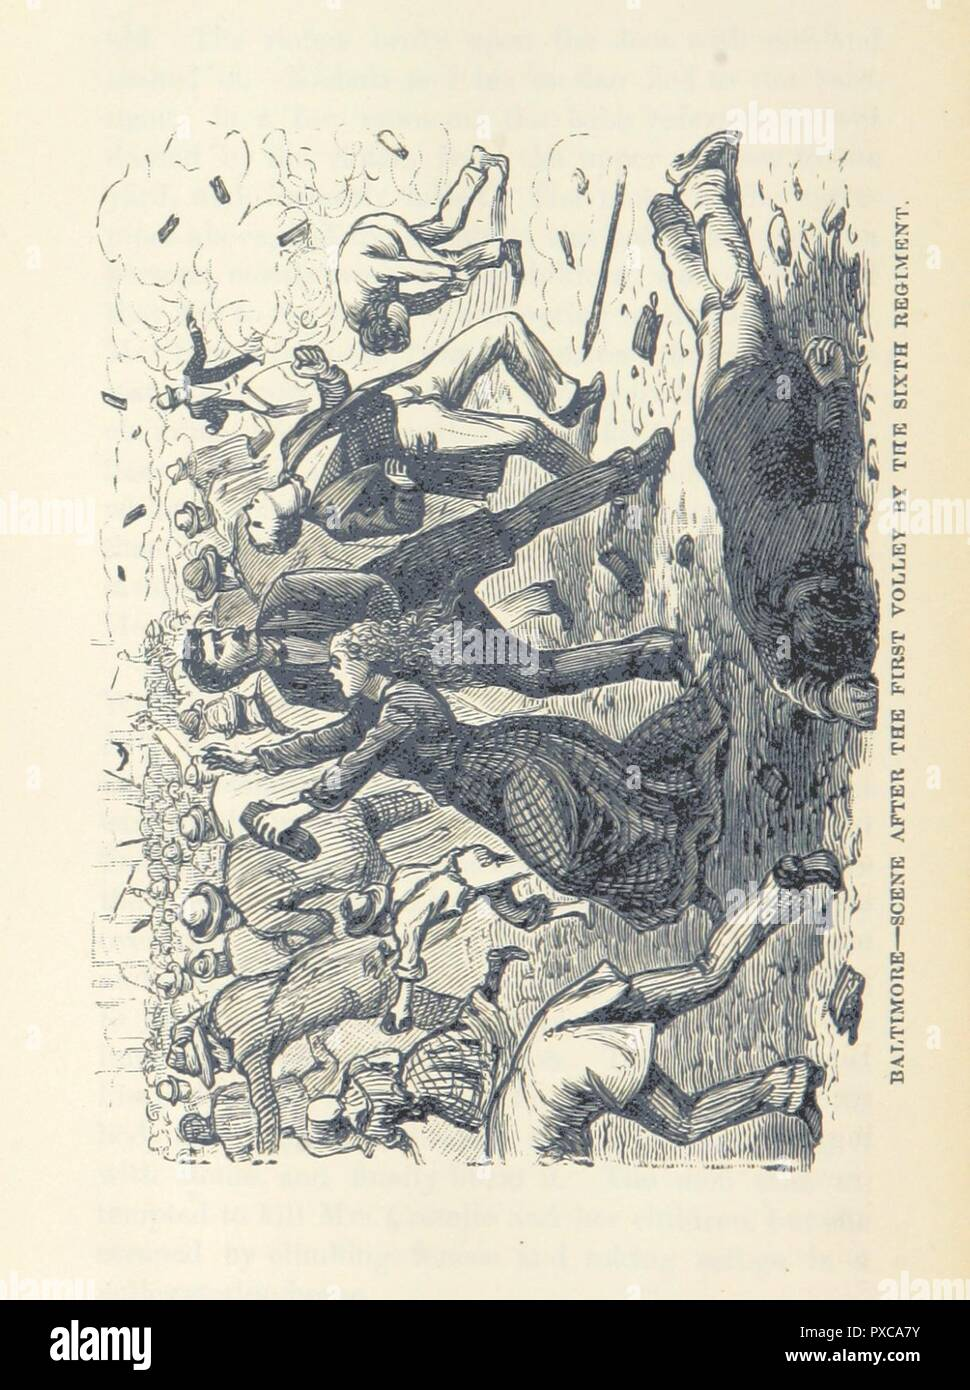 page 328 of 'Pen and Pencil Sketches of the Great Riots  An